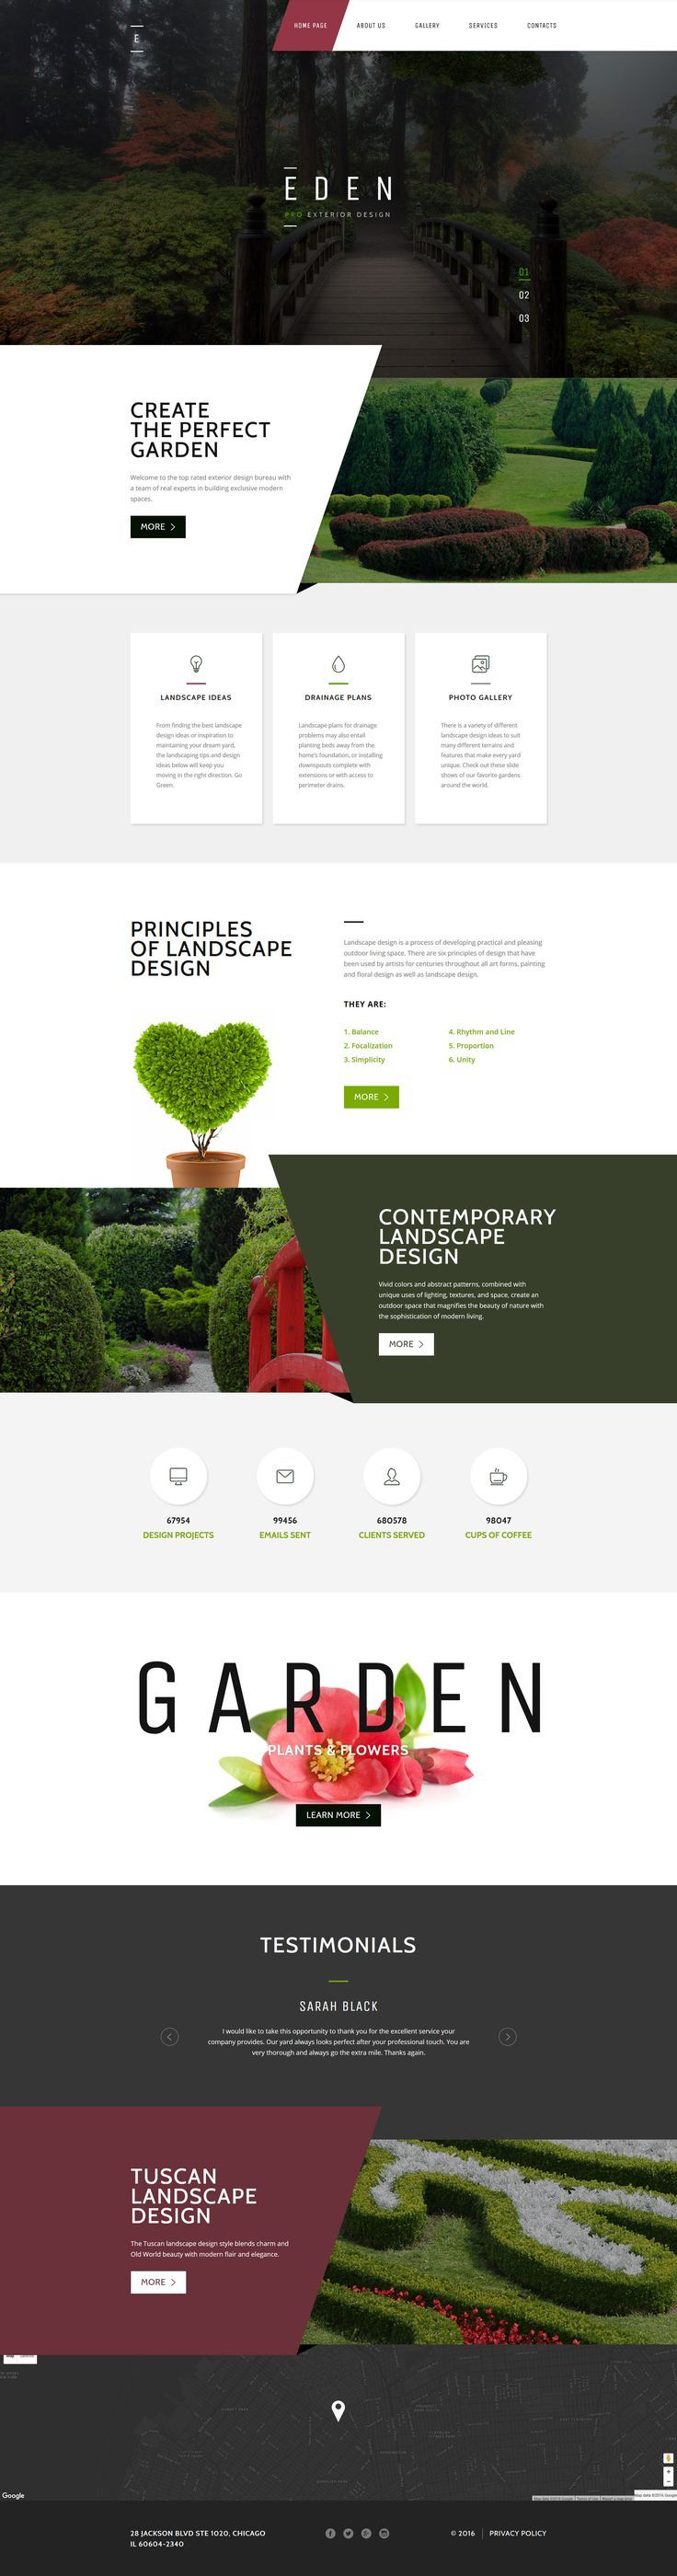 Garden Design Website Ideas Mesmerizing 33 Best Garden Design Ideas  For More #garden Design Ideas . Design Decoration